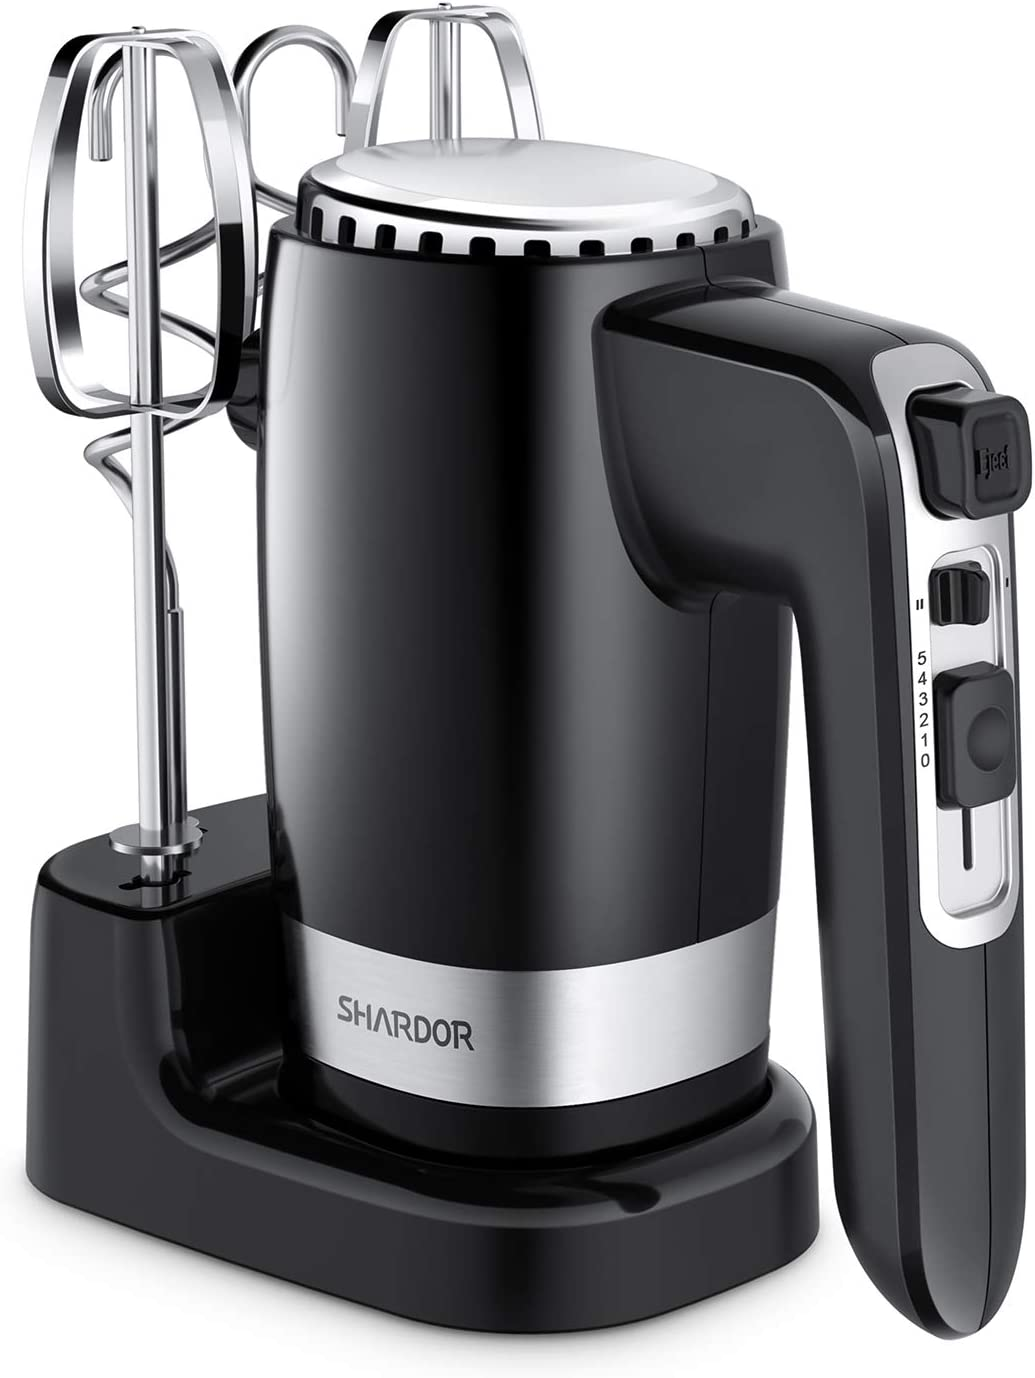 SHARDOR Hand Mixer Powerful 300W Ultra Power Handhold Mixer Electric Hand Mixers with Turbo Heavy Duty Motor